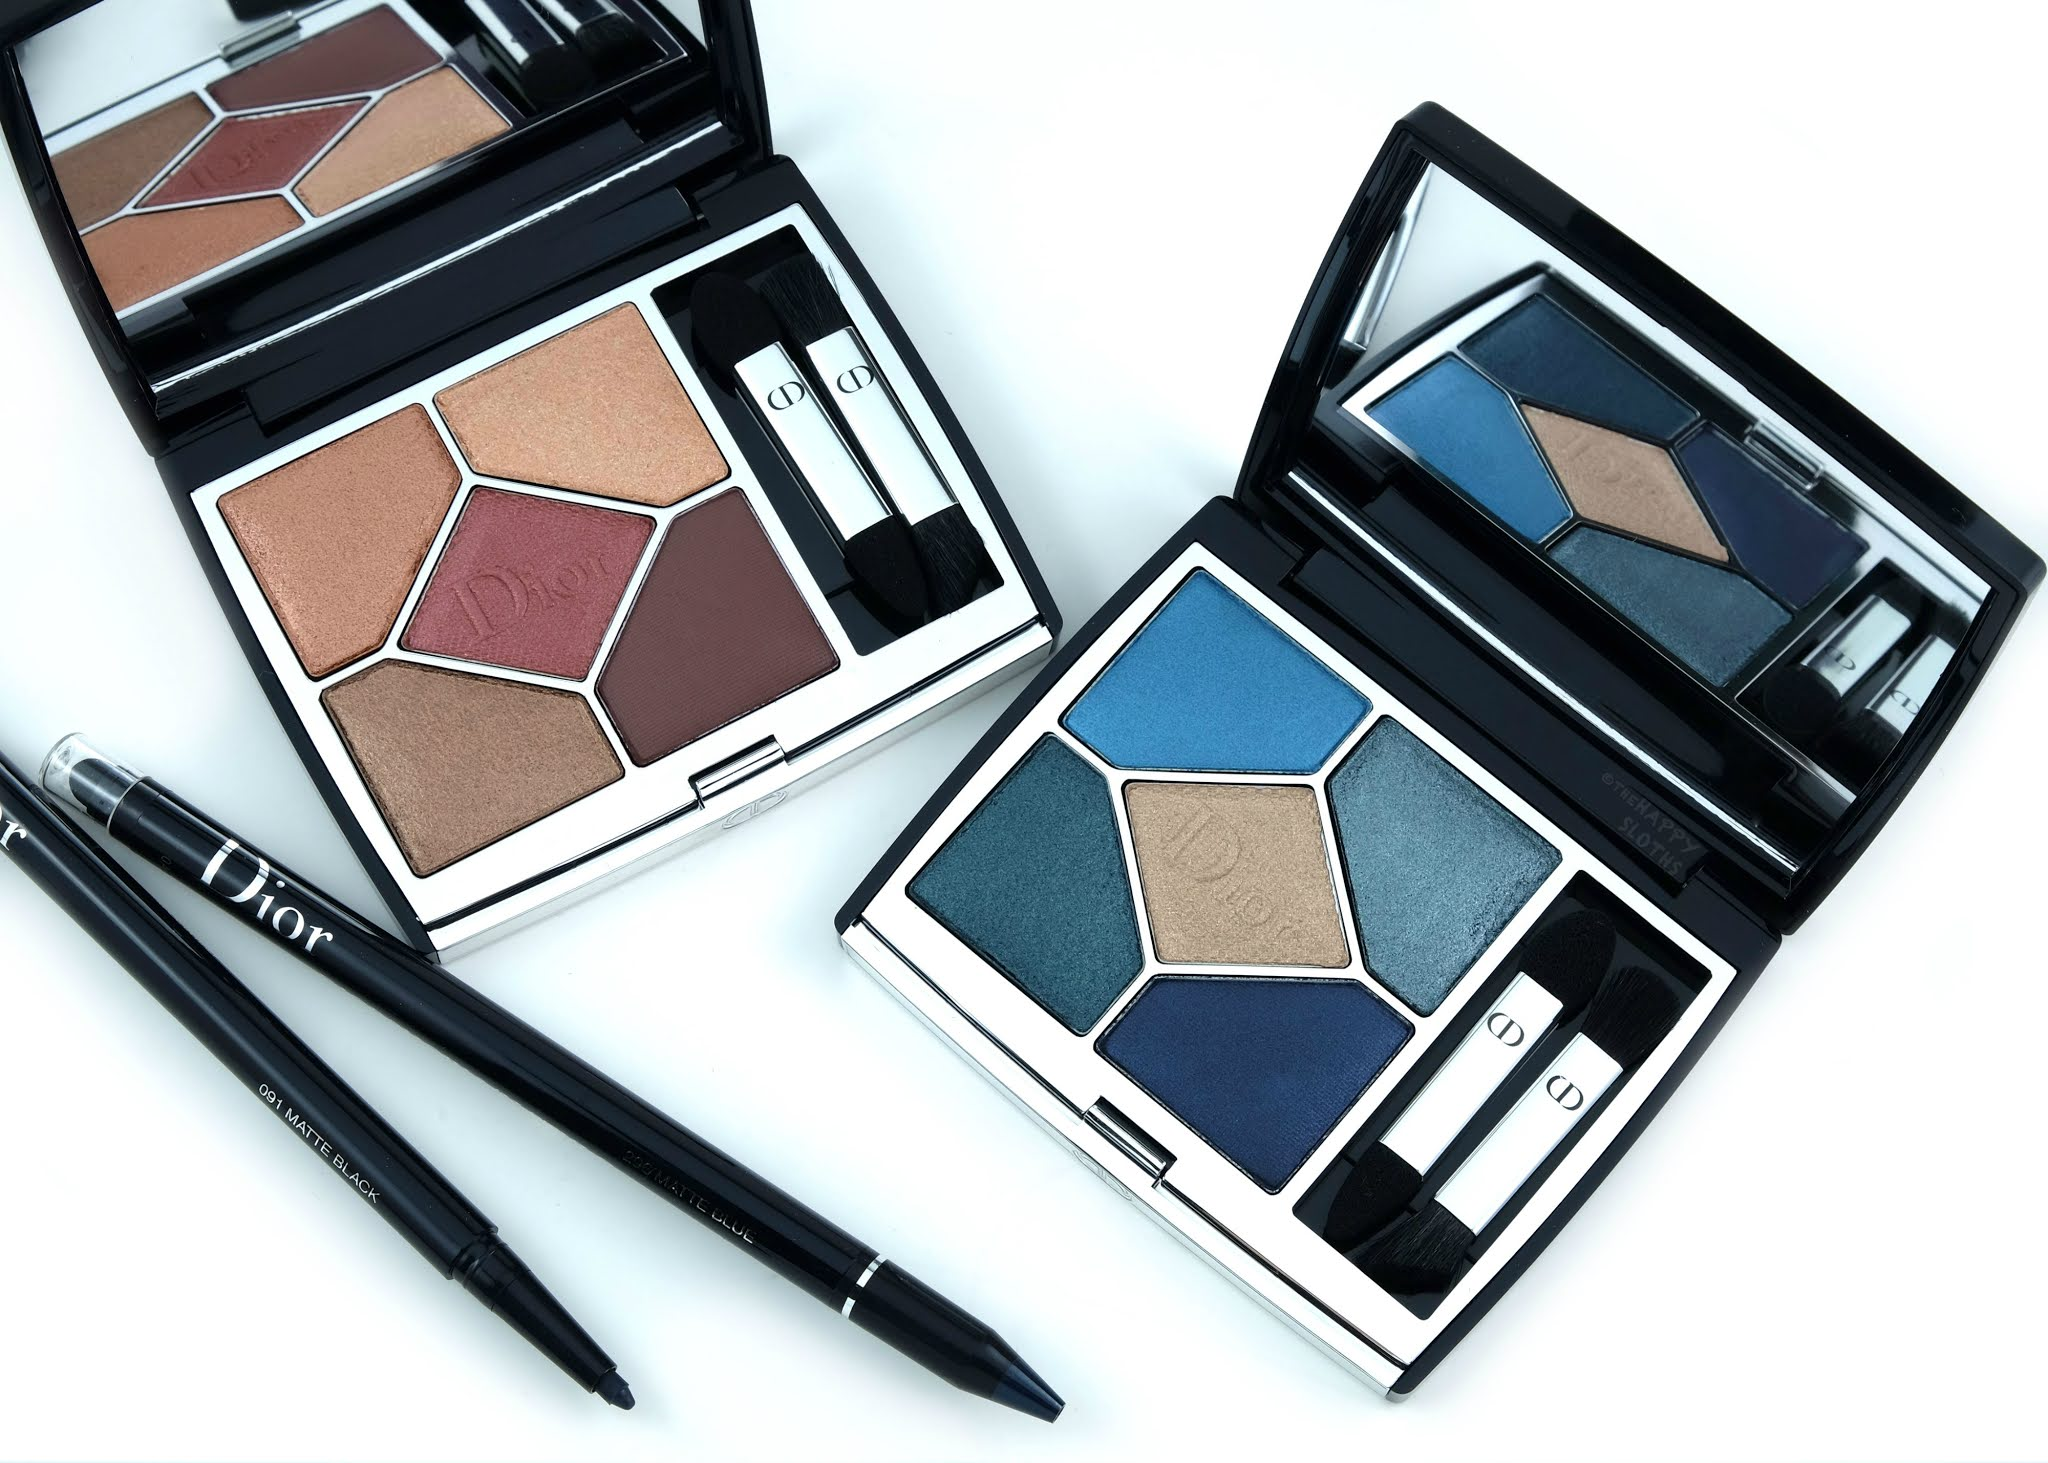 Dior | 5 Couleurs Couture Eyeshadow Palette & Diorshow 24H Stylo: Review and Swatches